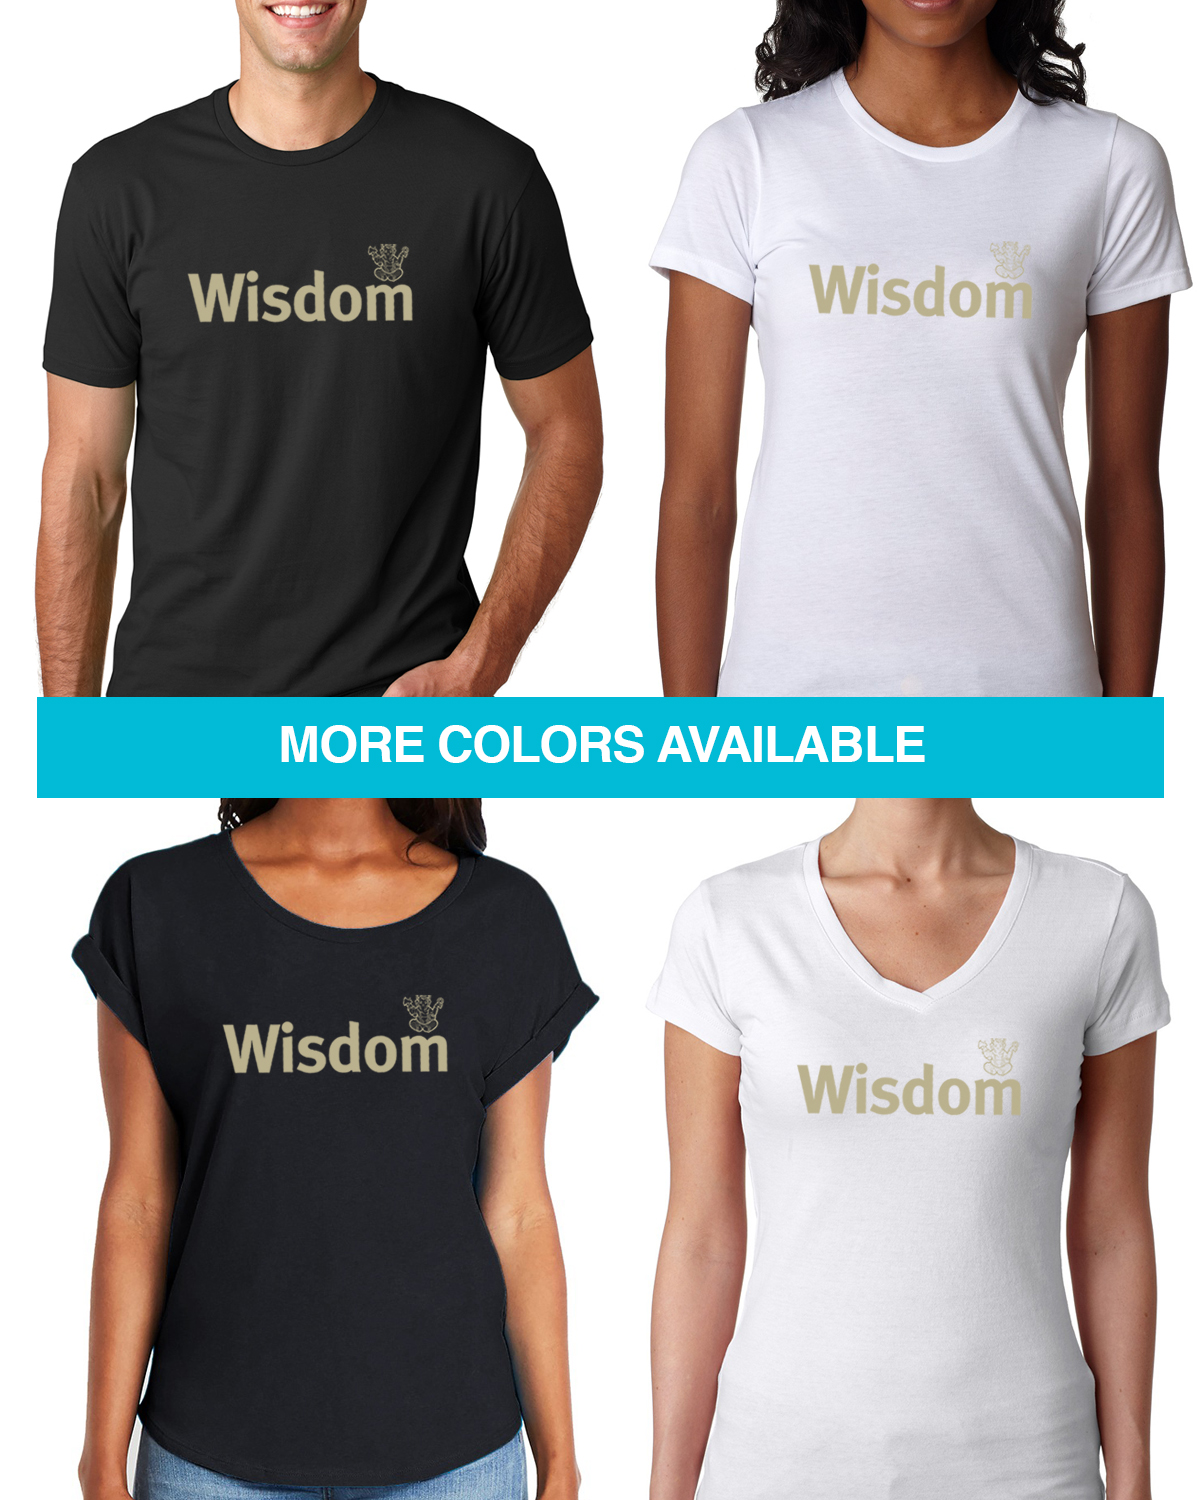 Short sleeve inspirational word ' wisdom' t-shirt for men and women